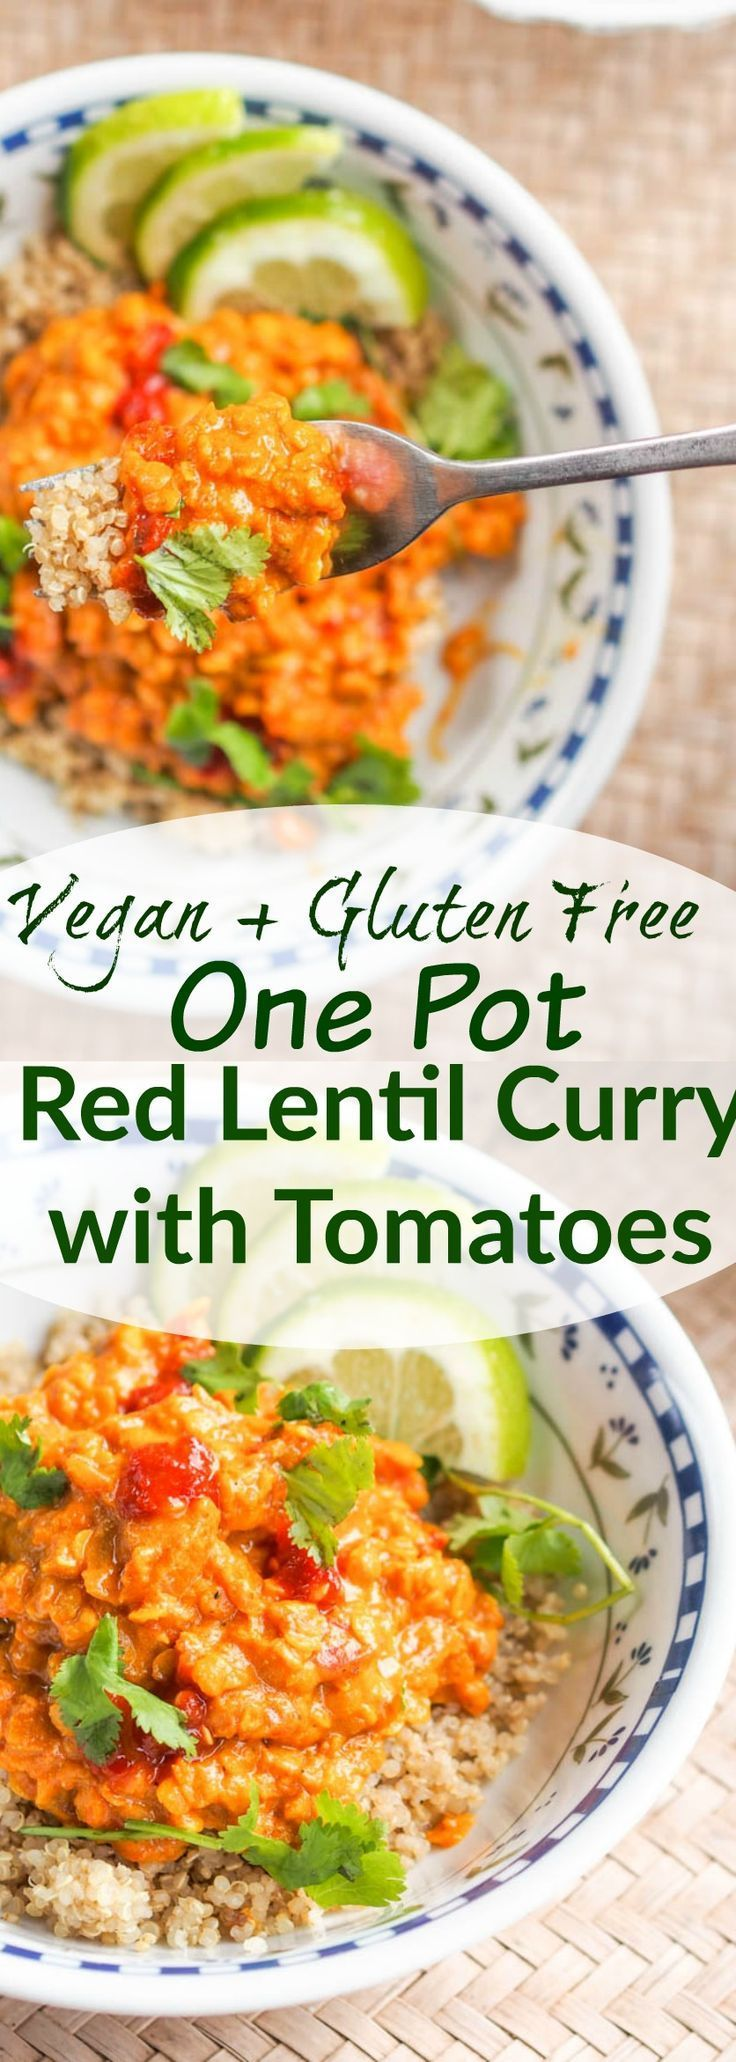 Vegan lentil curry with tomatoes makes for the perfect meatless one pot dinner ready in 30 minutes. Requiring only kitchen staples, a few spices and the star ingredients – red lentils, coconut milk and canned tomatoes. This is a dish you'll be making over and over again. Gluten-Free too.